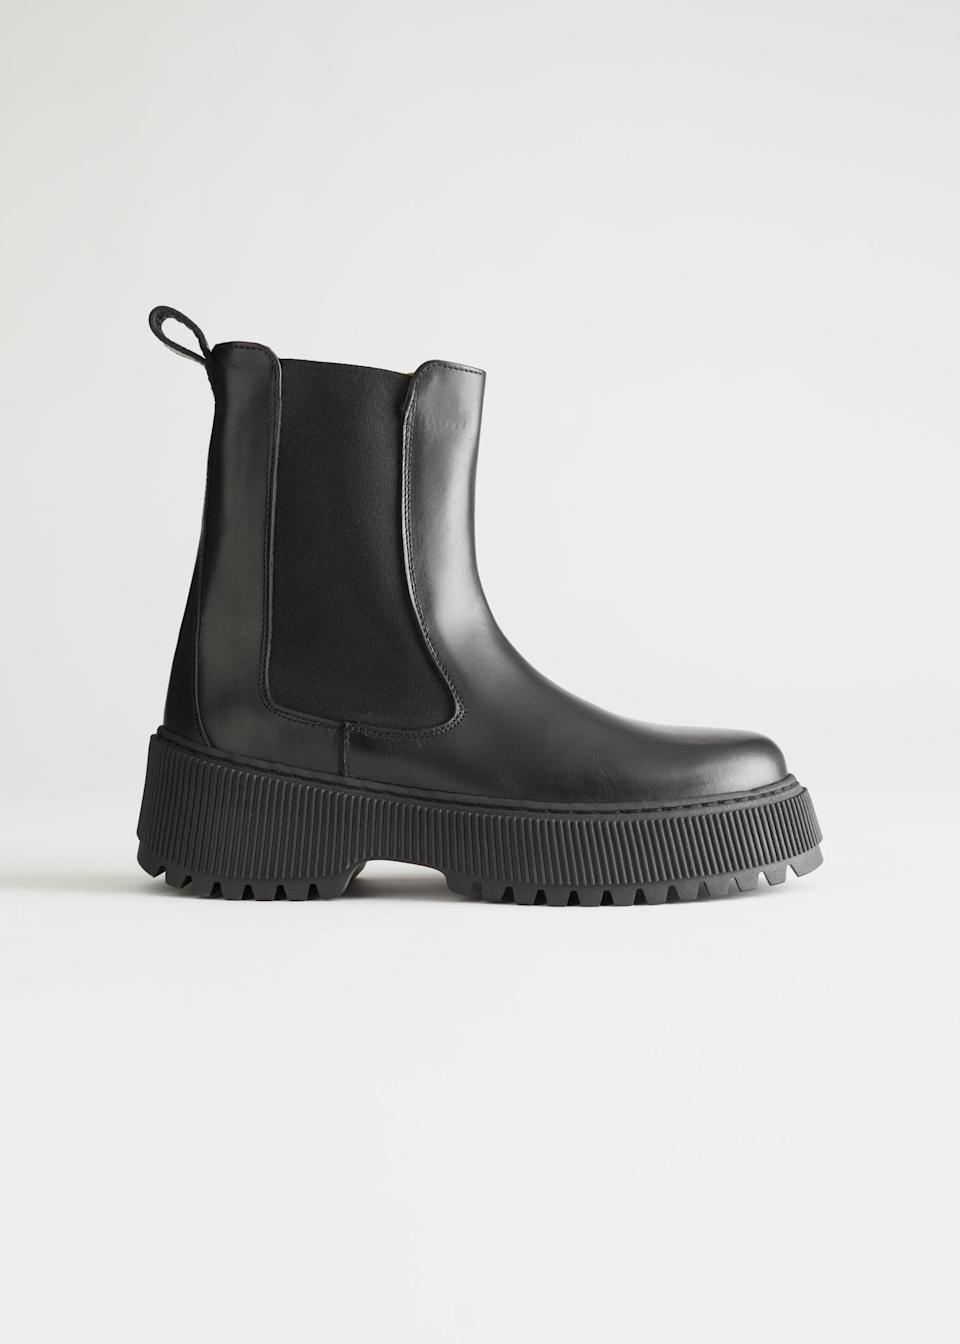 "I'm a winter baby so I'm happy that boot weather is back! This year, the chunkier the better for me. I'm not sure if it's the authority they command or that they simply give me a bit of extra height (I'm only 5ft) but I'll be adding these platform boots to my basket come payday. They'll look cool with my trusty black jumper dress.<br><br><br><strong>& Other Stories</strong> Chunky Leather Chelsea Boots, $, available at <a href=""https://www.stories.com/en_gbp/shoes/boots/chelseaboots/product.chunky-leather-chelsea-boots-black.0893530001.html"" rel=""nofollow noopener"" target=""_blank"" data-ylk=""slk:& Other Stories"" class=""link rapid-noclick-resp"">& Other Stories</a>"